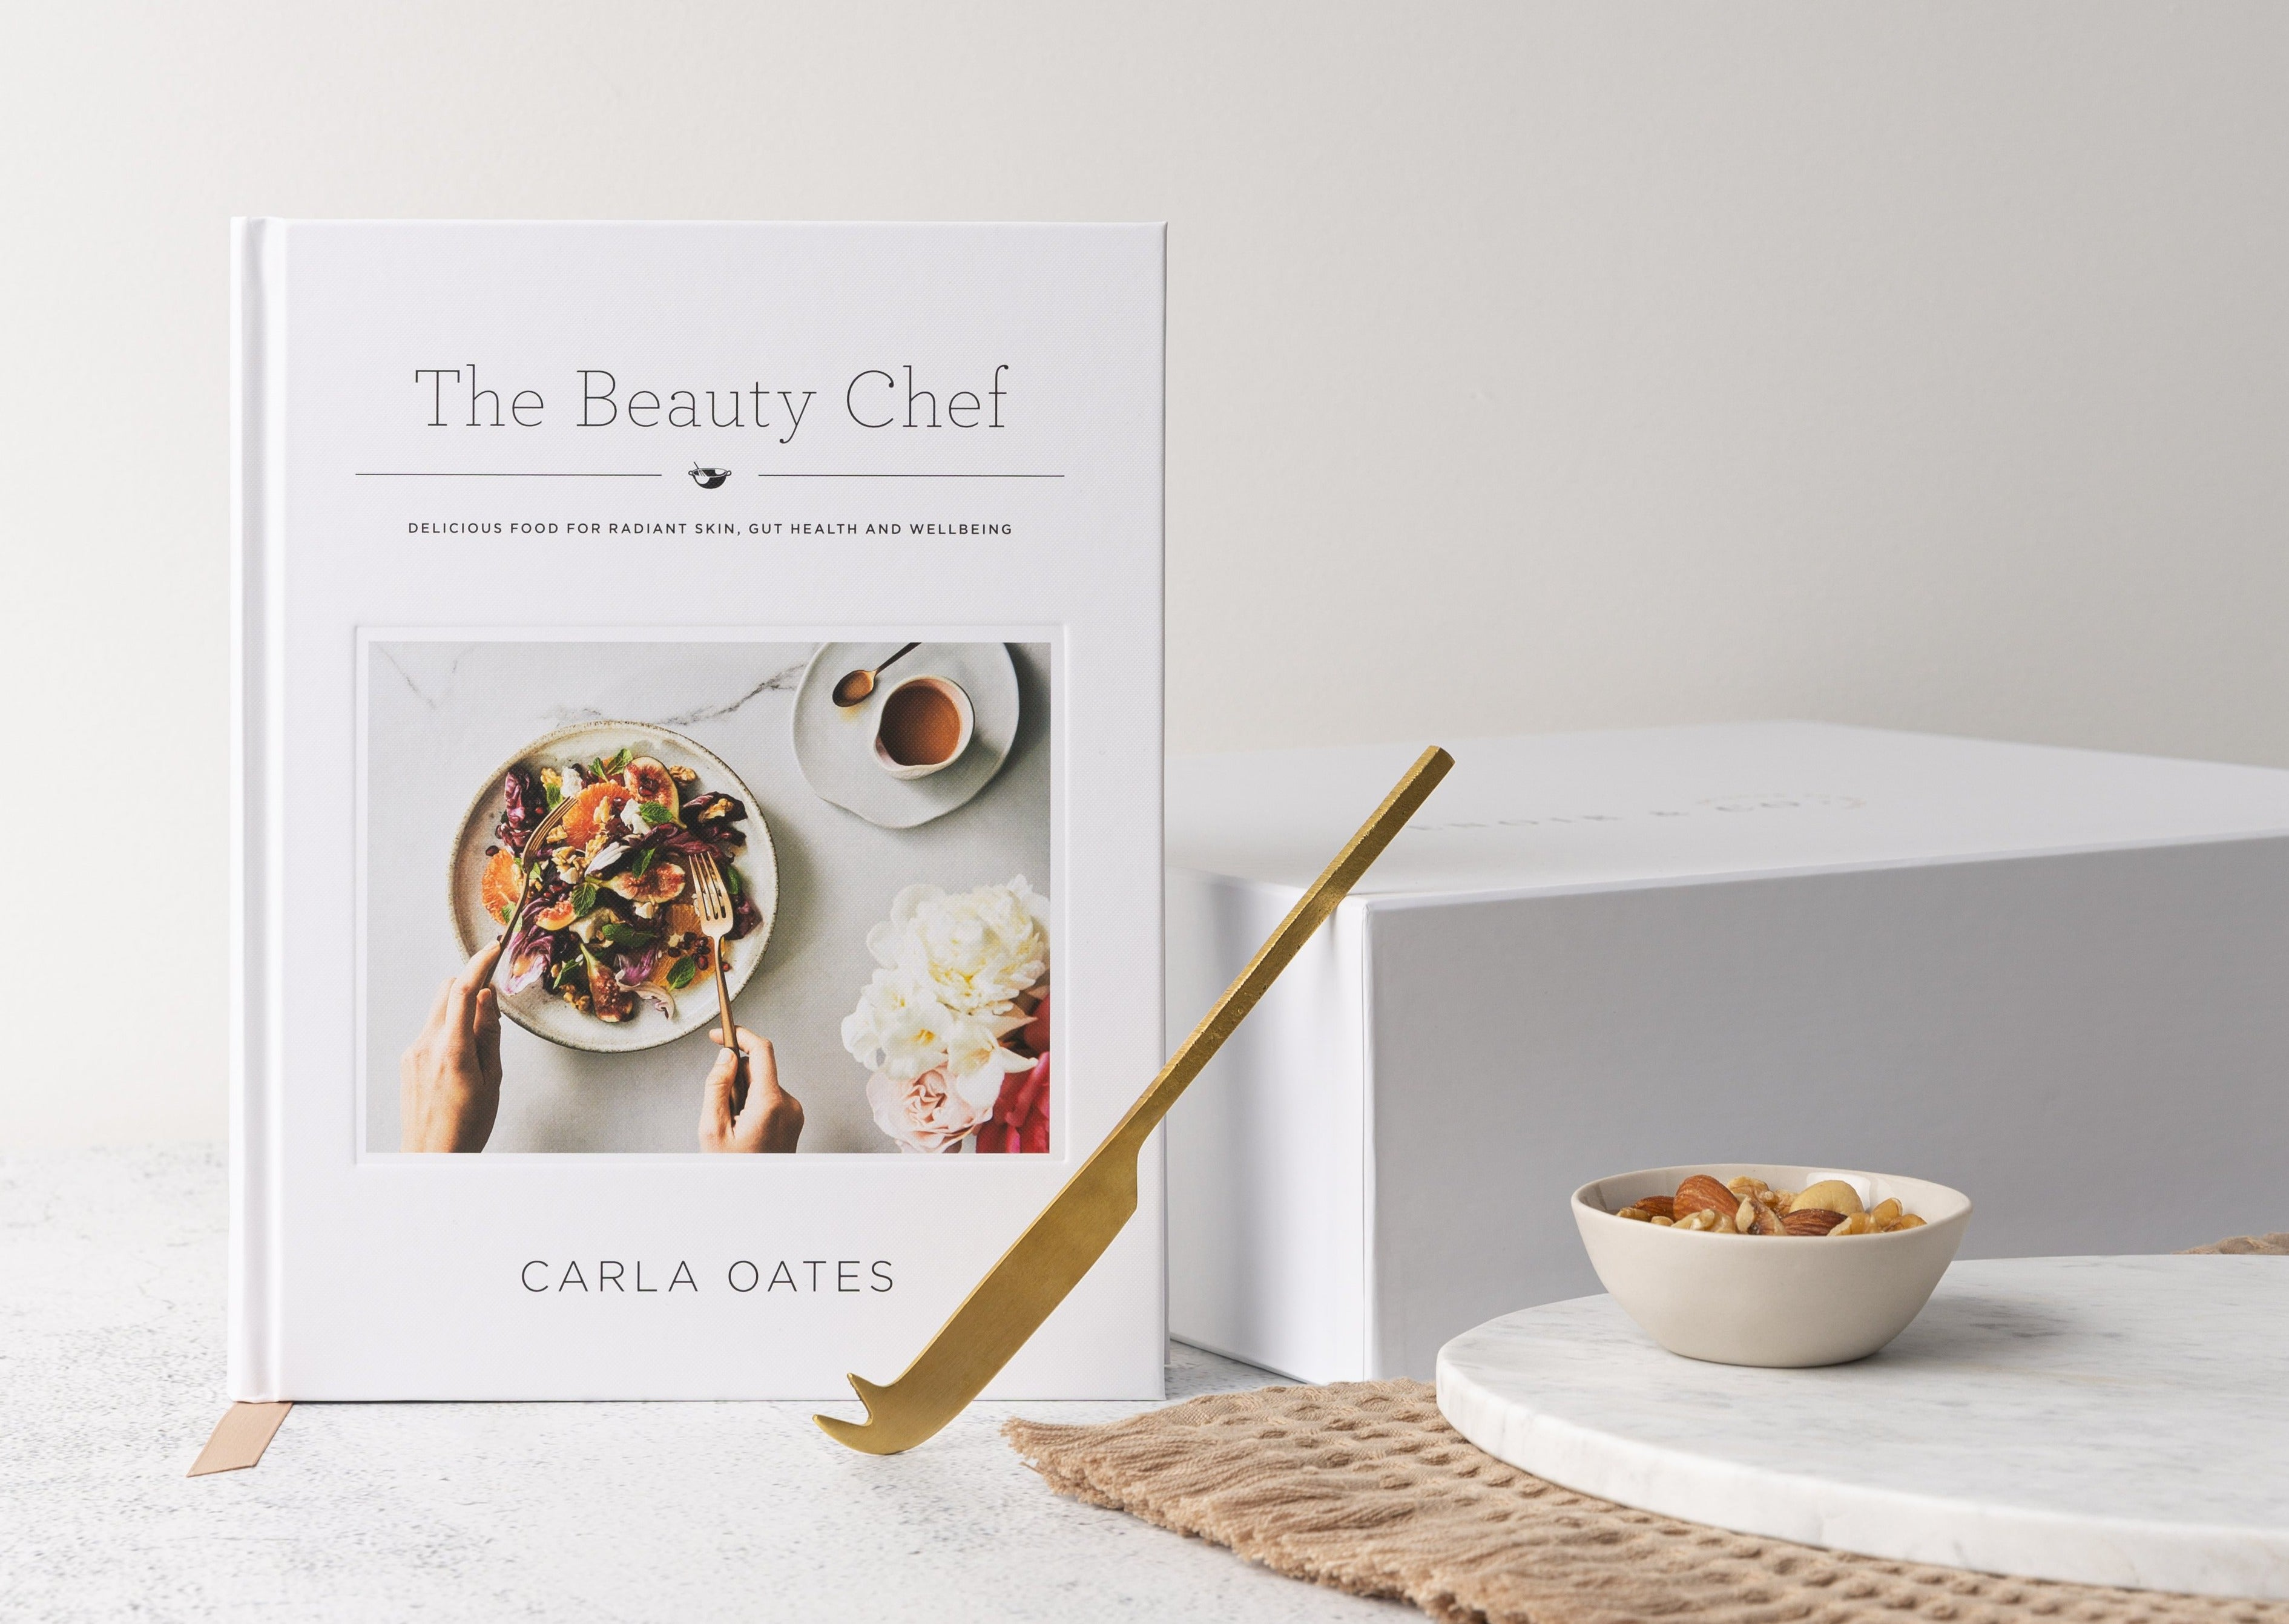 The Beauty Chef by Carla Oates